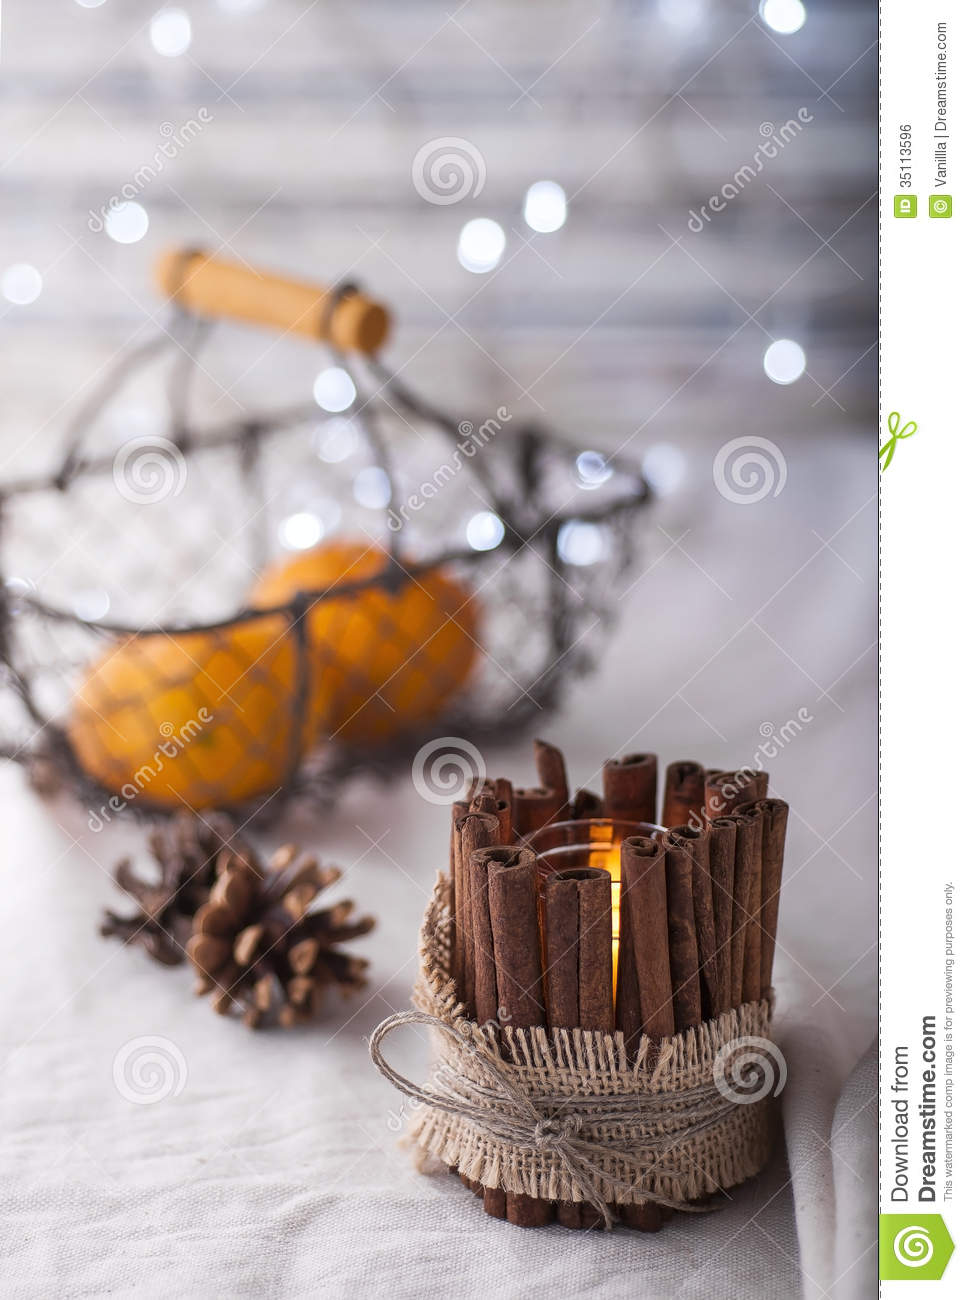 Handmade Candle Stand Designs : Handmade candle holder royalty free stock image